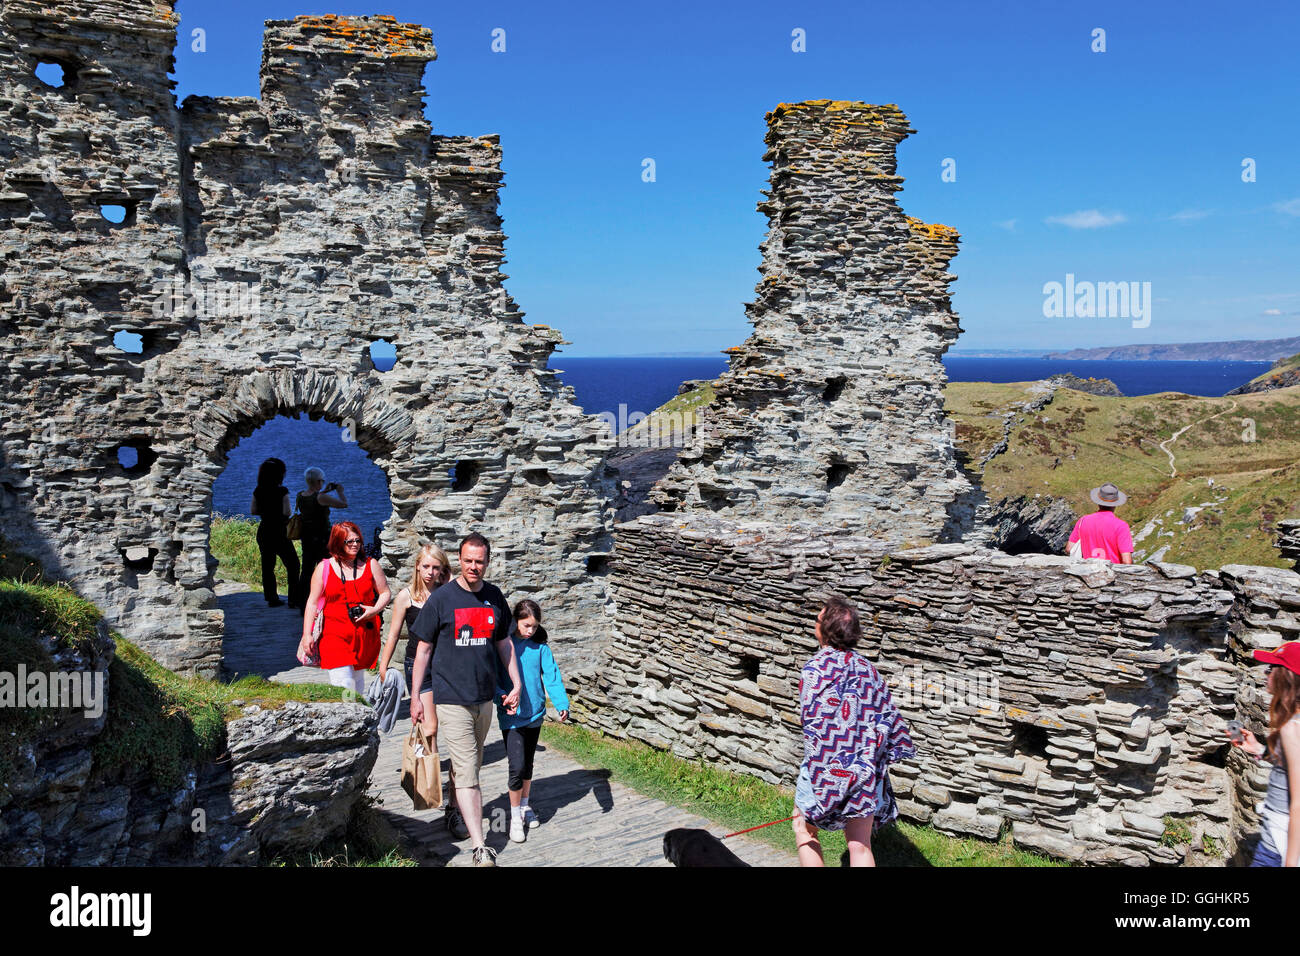 Tintagel Castle, associated with the legends surrounding King Arthur, Tintagel, Cornwall, England, Great Britain - Stock Image